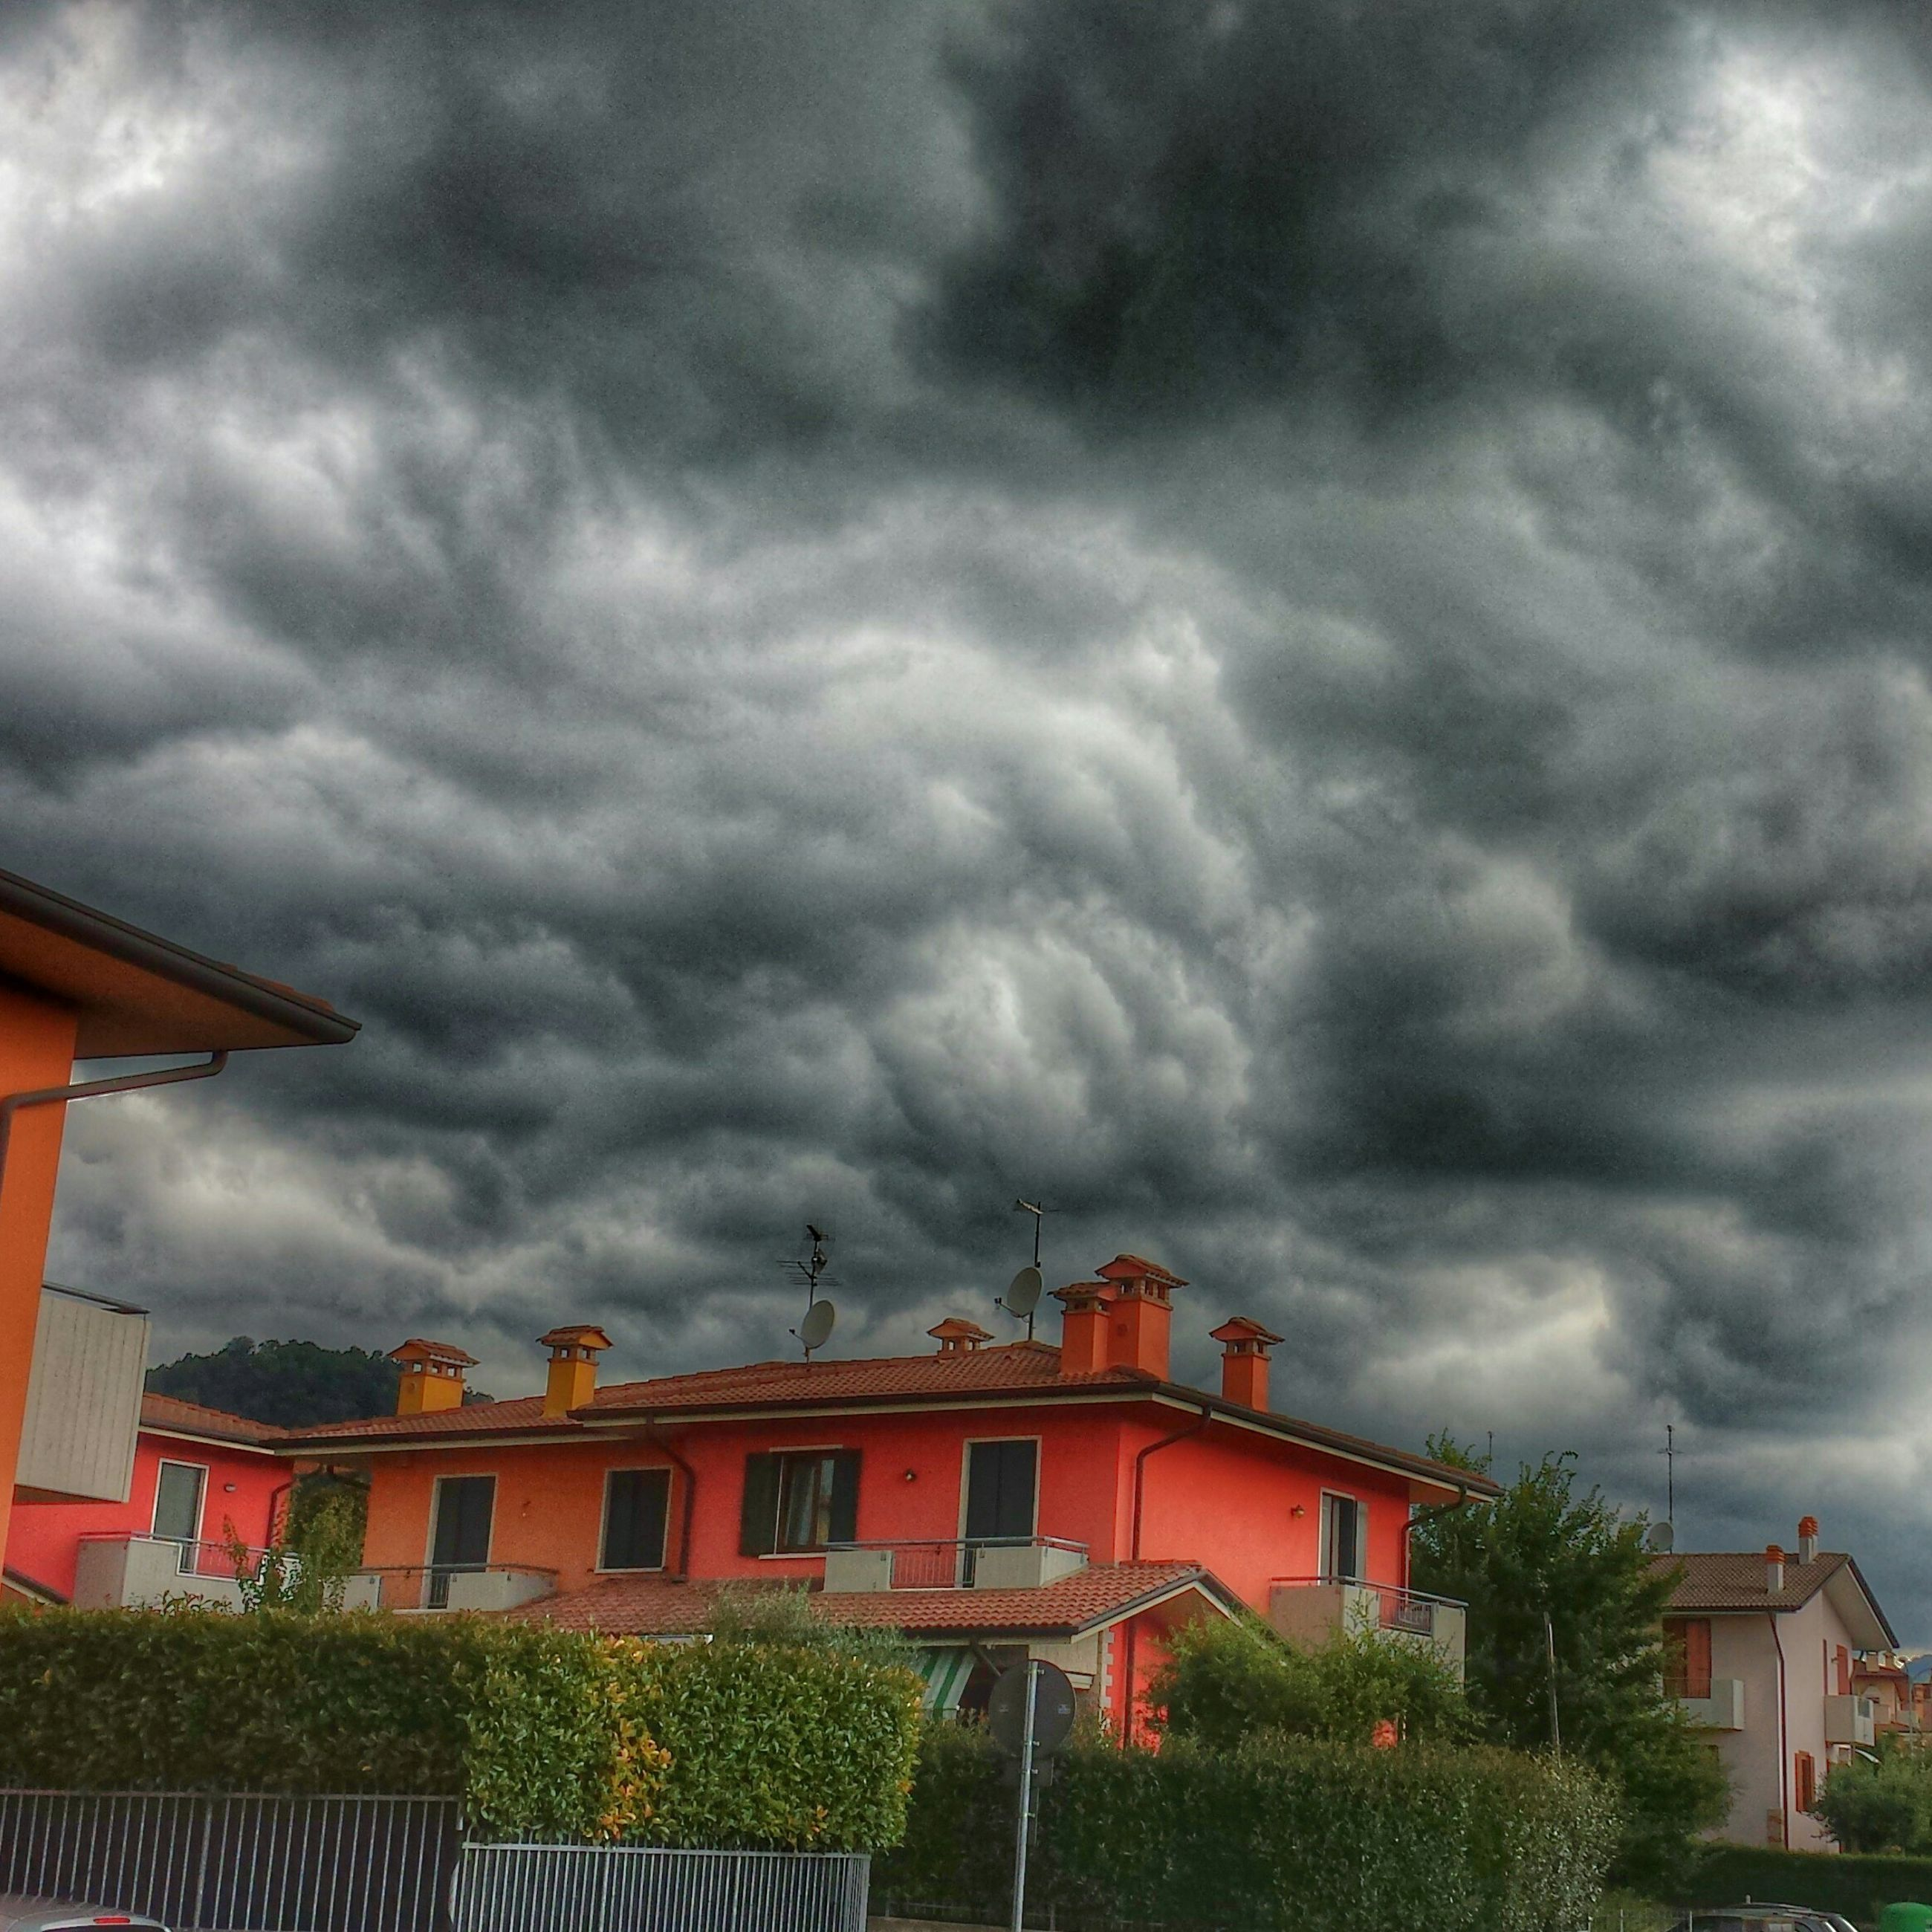 architecture, cloud - sky, cloudy, building exterior, sky, built structure, weather, storm cloud, overcast, cloud, house, low angle view, residential structure, dramatic sky, residential building, cloudscape, roof, outdoors, atmospheric mood, nature